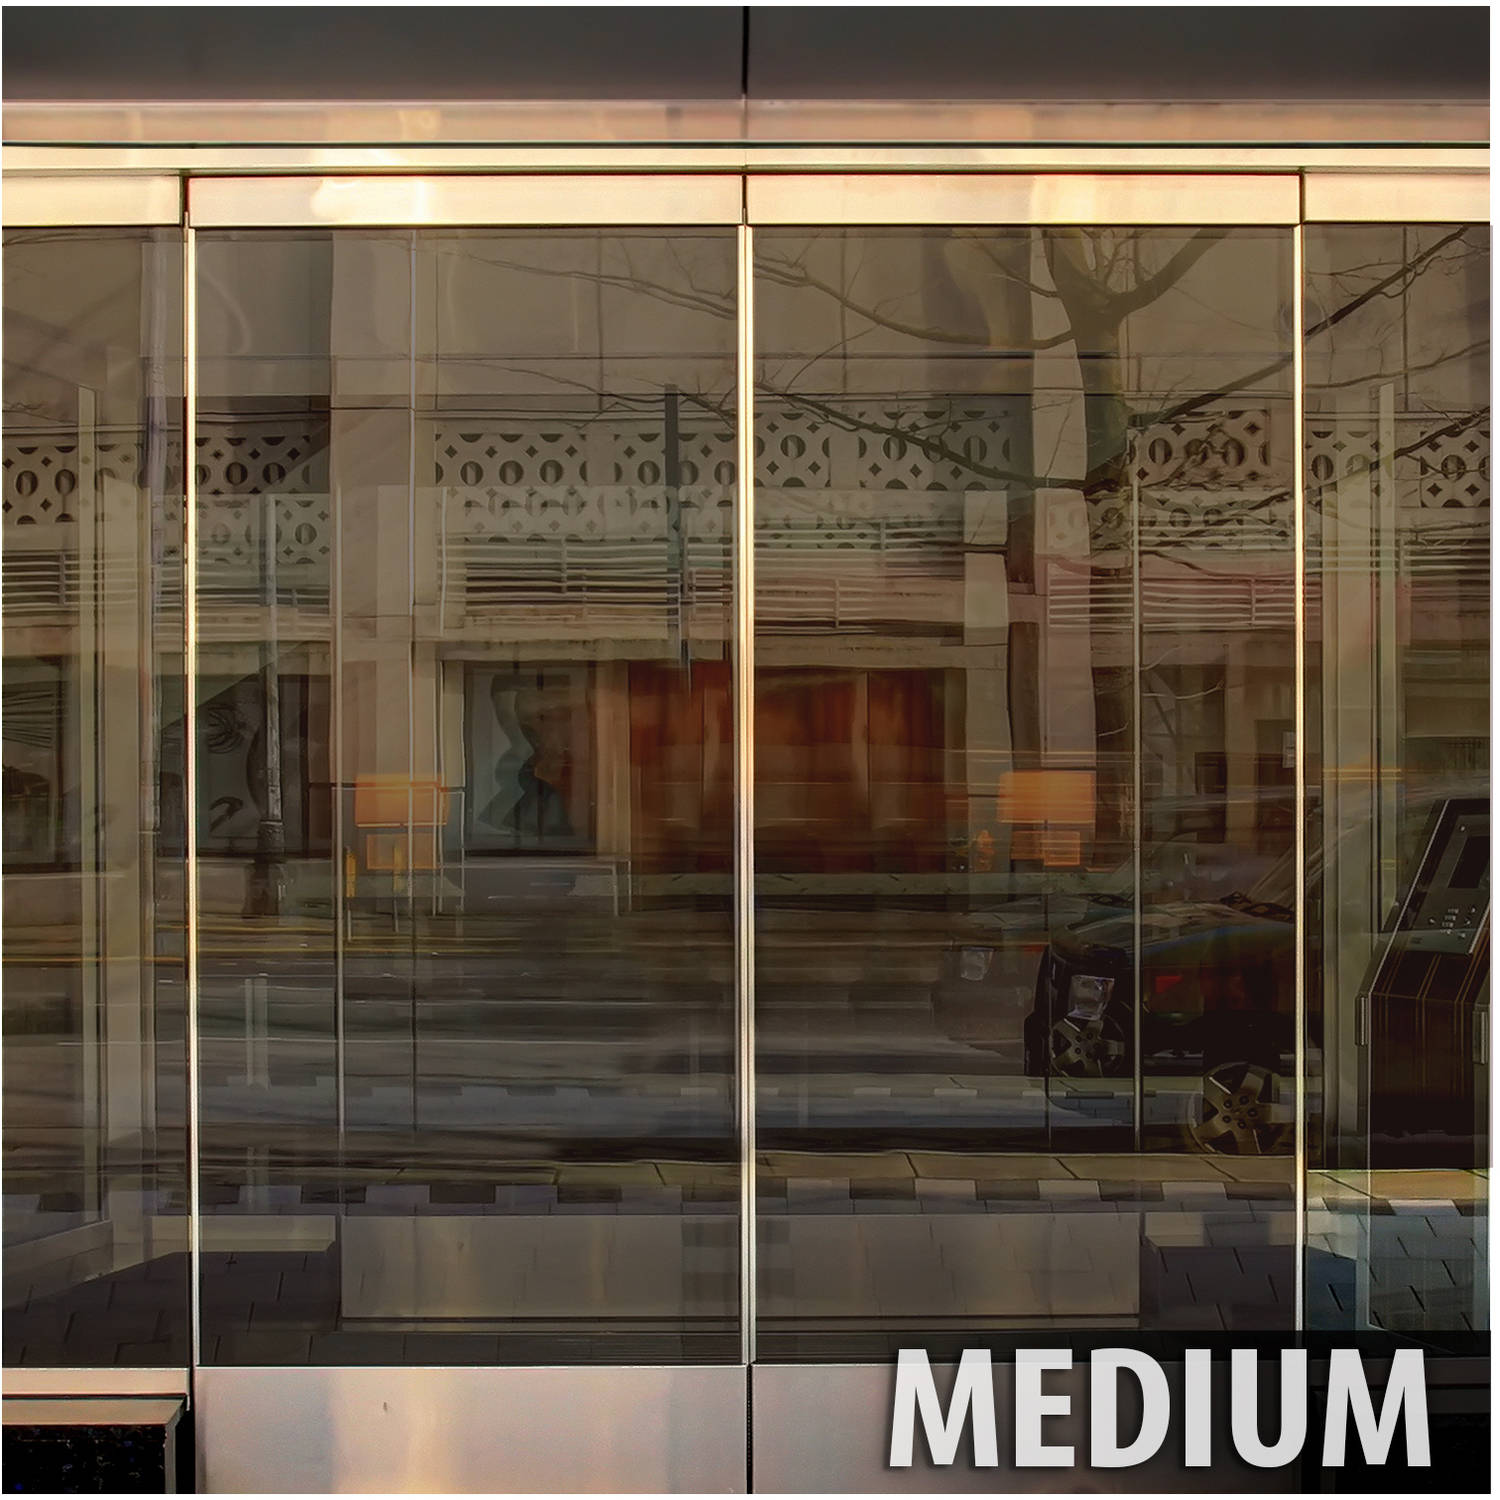 BDF BRZ35 Bronze Reflective Sun Control and Privacy Window Film (Medium) 36in X 7ft by BuyDecorativeFilm